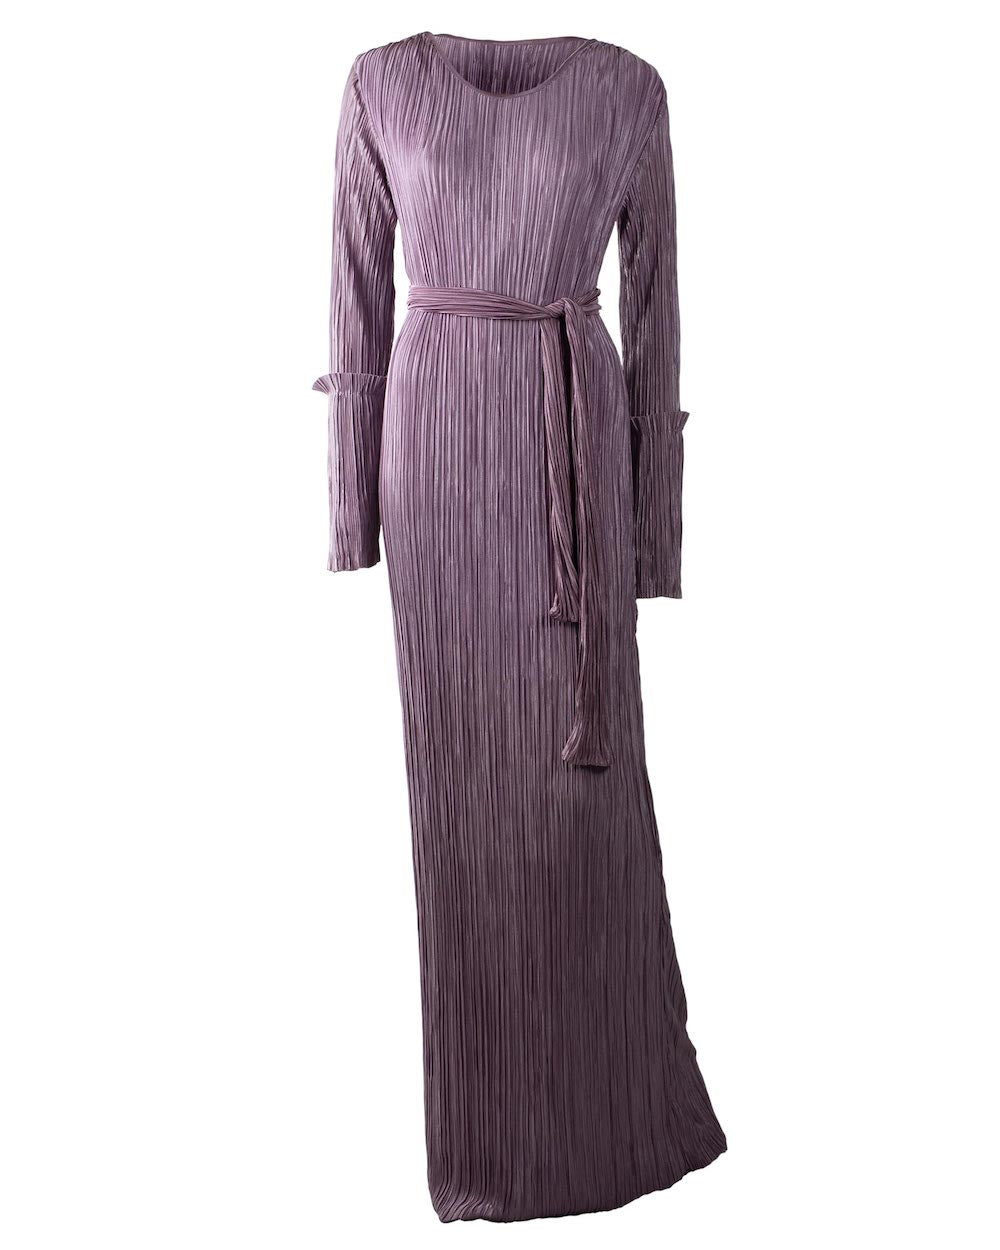 Purple Pleated Dress Abaya